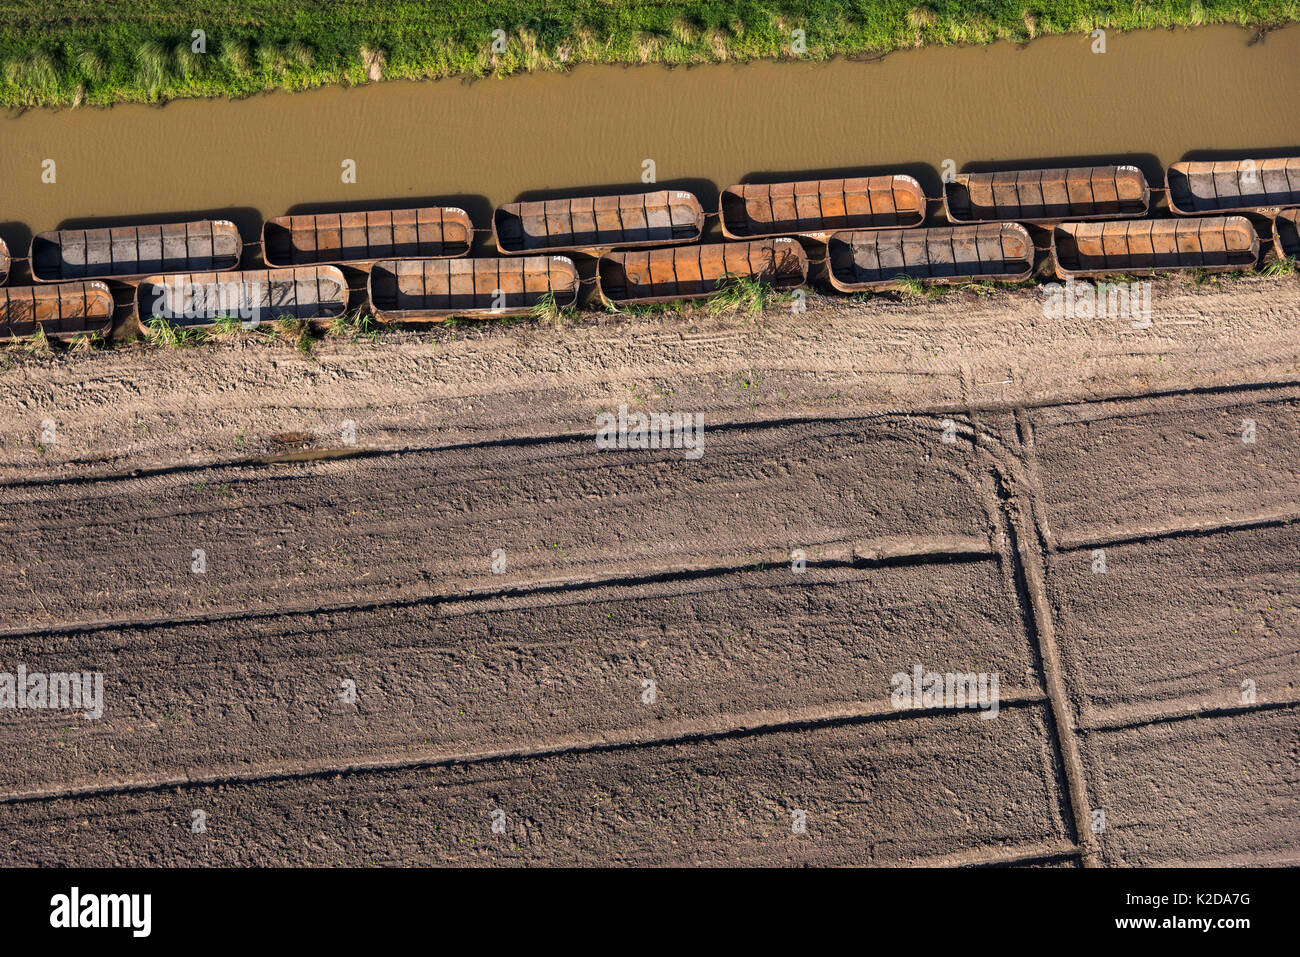 Aerial view of sugarcane barges (punts) East Guyana, South America - Stock Image